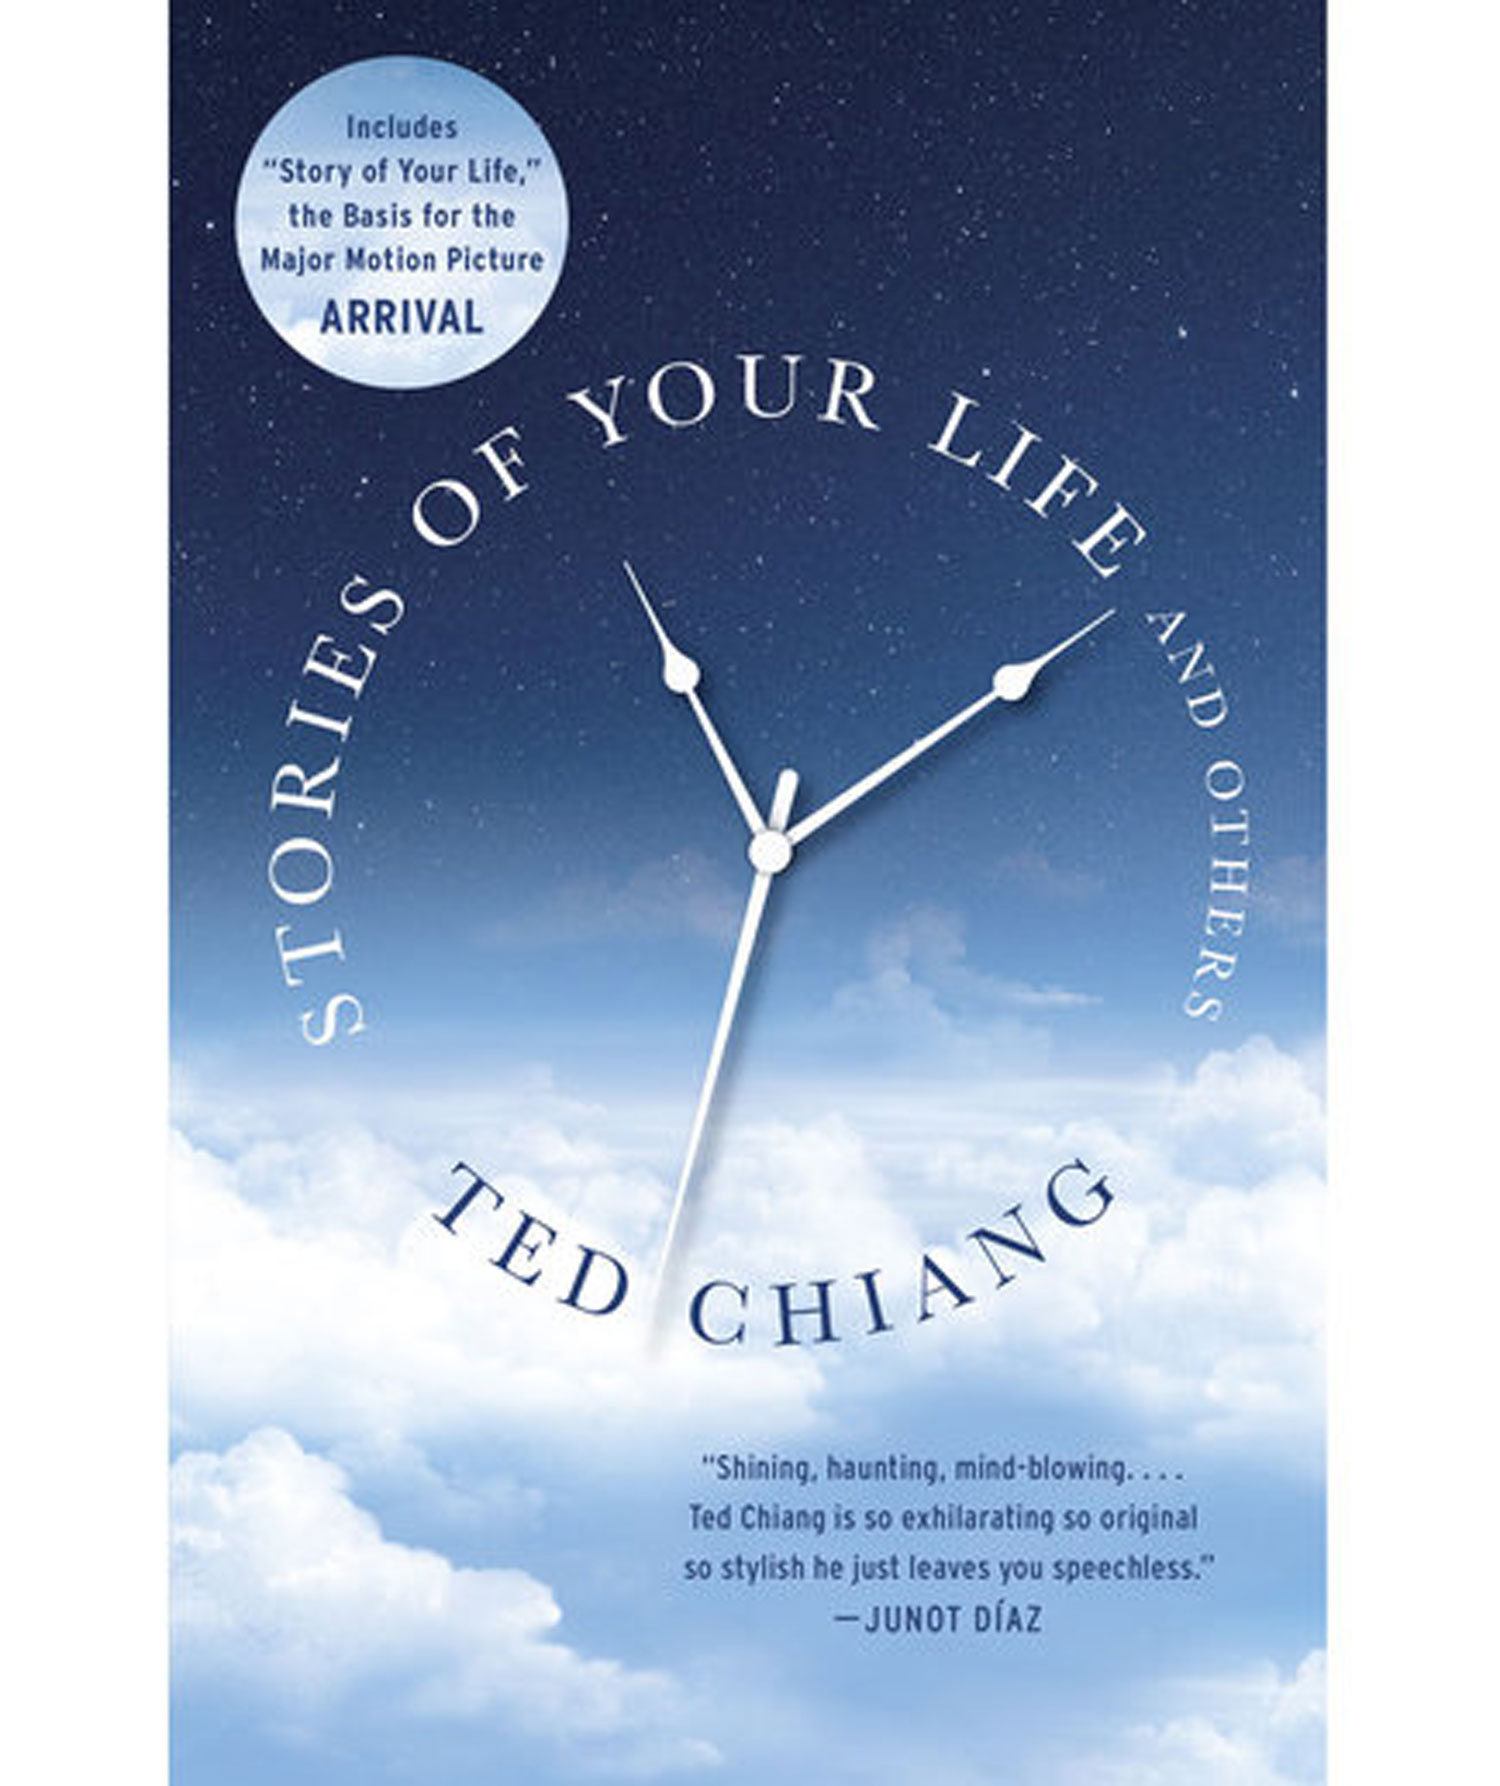 stories-your-life-ted-chiang